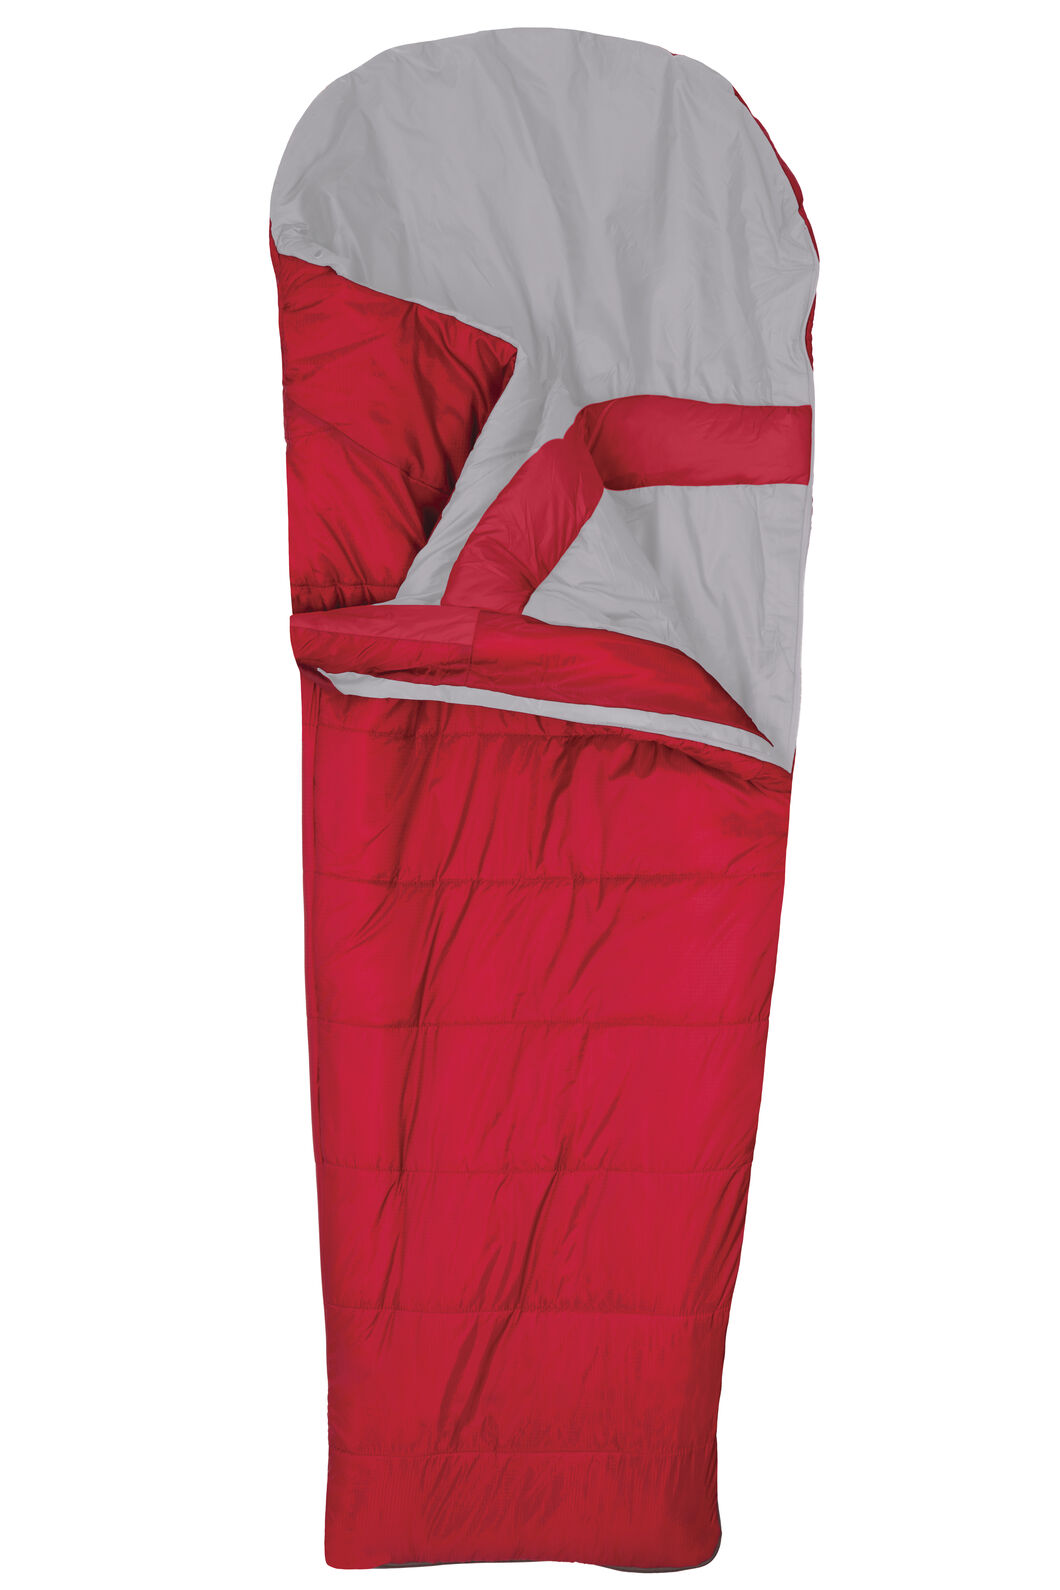 Roam Synthetic 350 Sleeping Bag - Standard, Crimson, hi-res